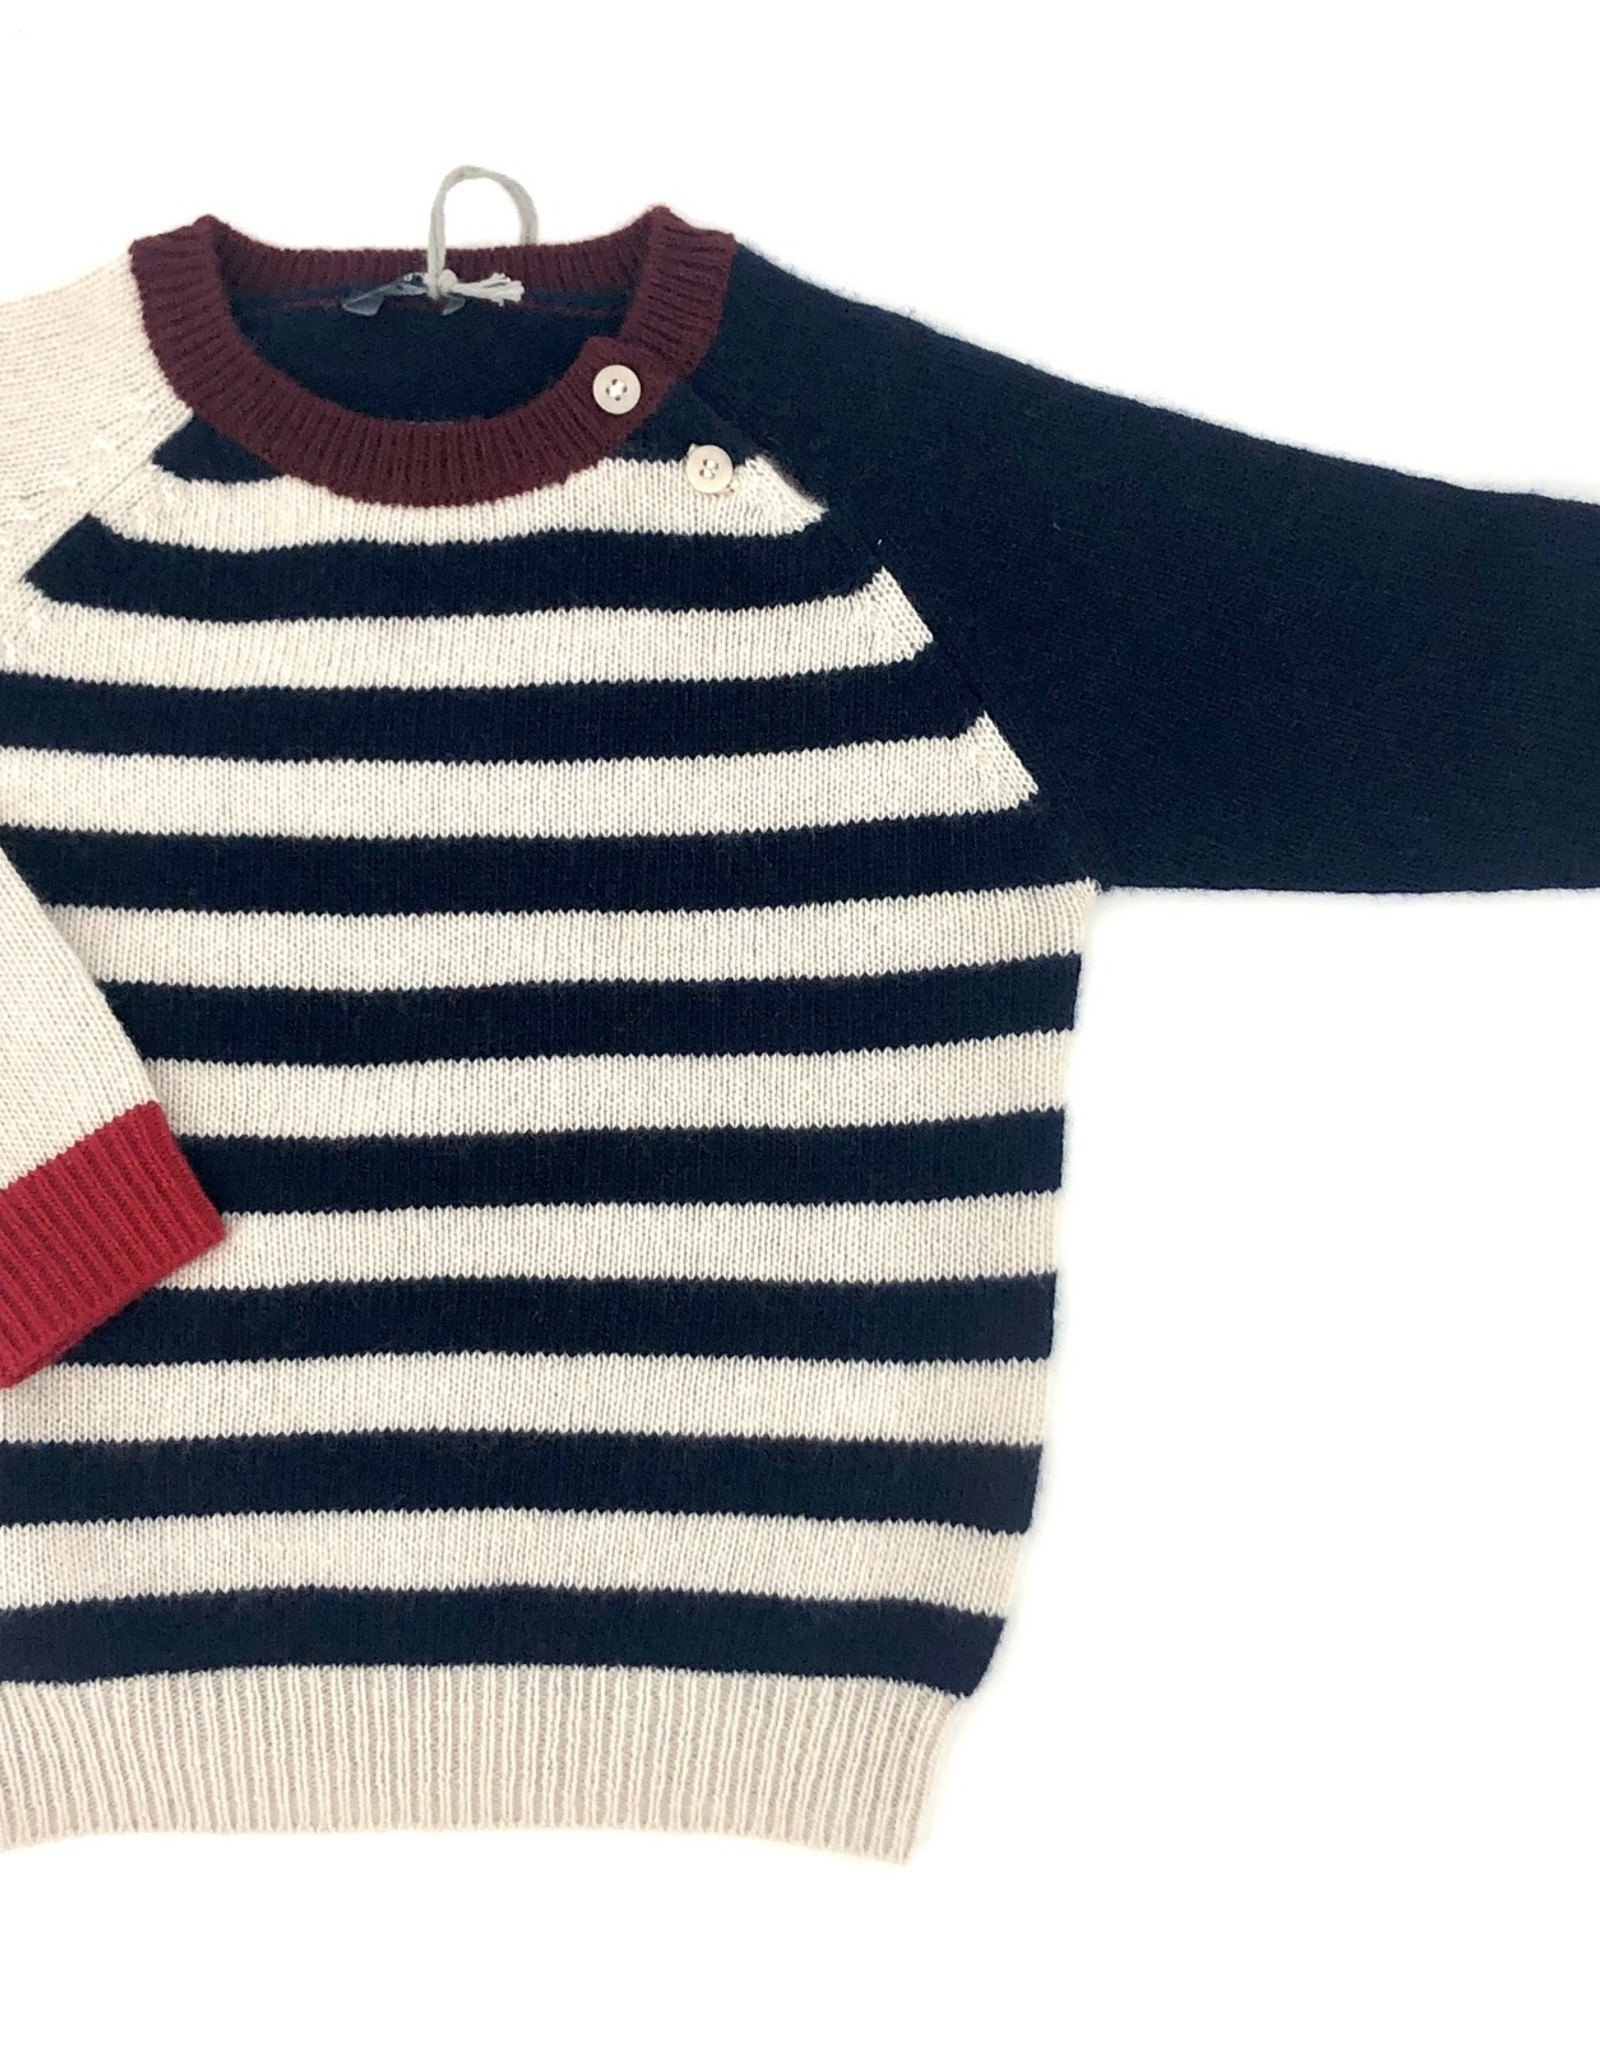 IL GUFO Sweater Natural/Navy Blue